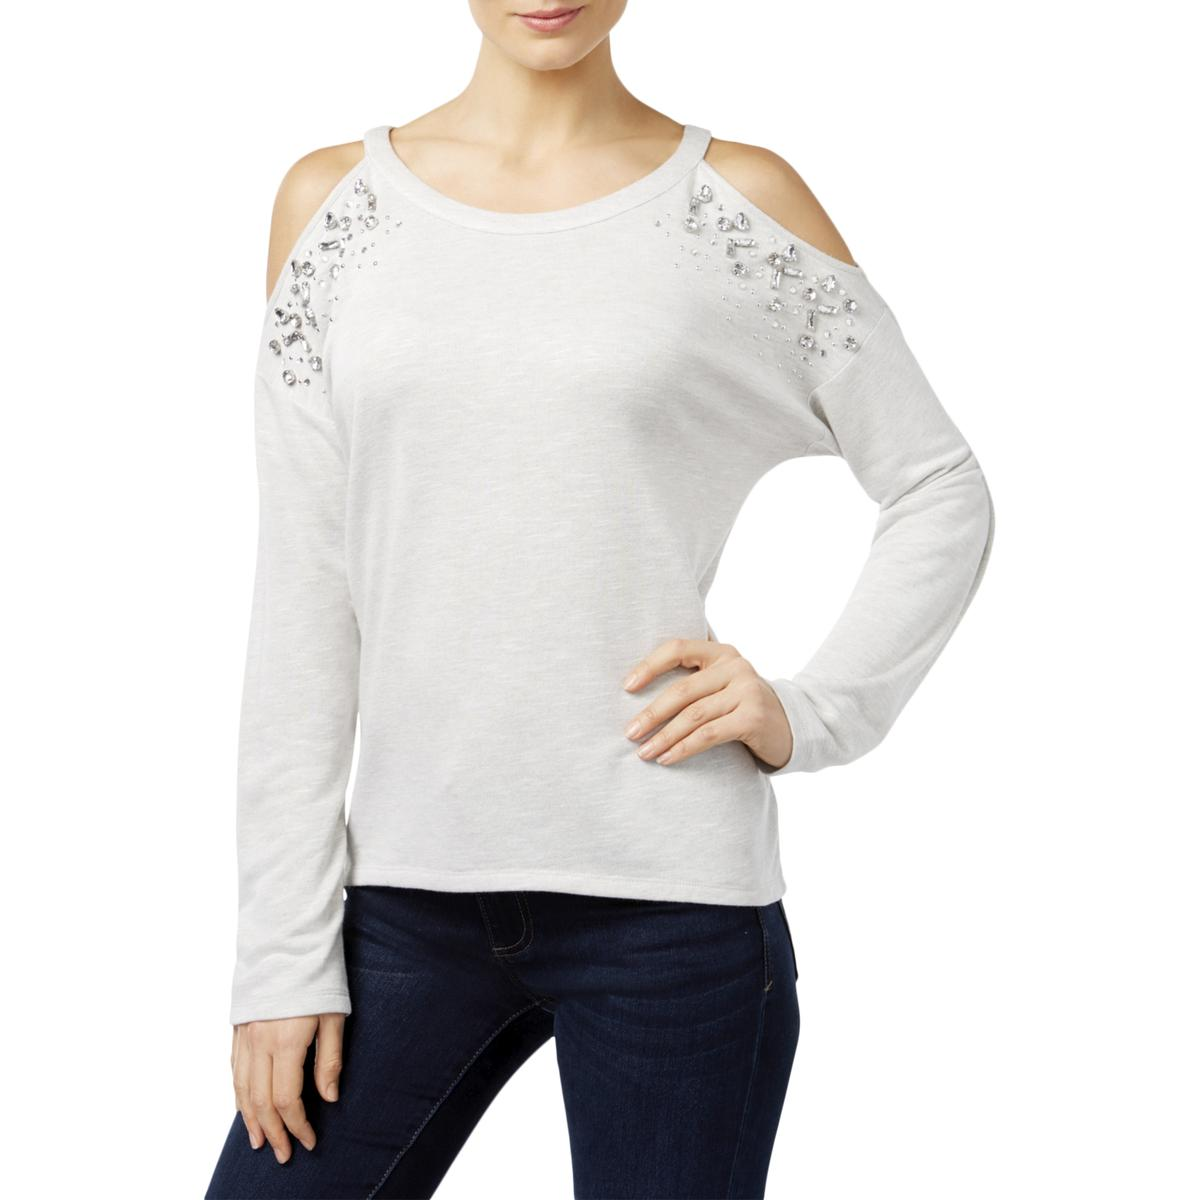 b1833798b73 Details about INC Womens Cold-Shoulder Embellished Long Sleeve Casual Top  Blouse BHFO 3384